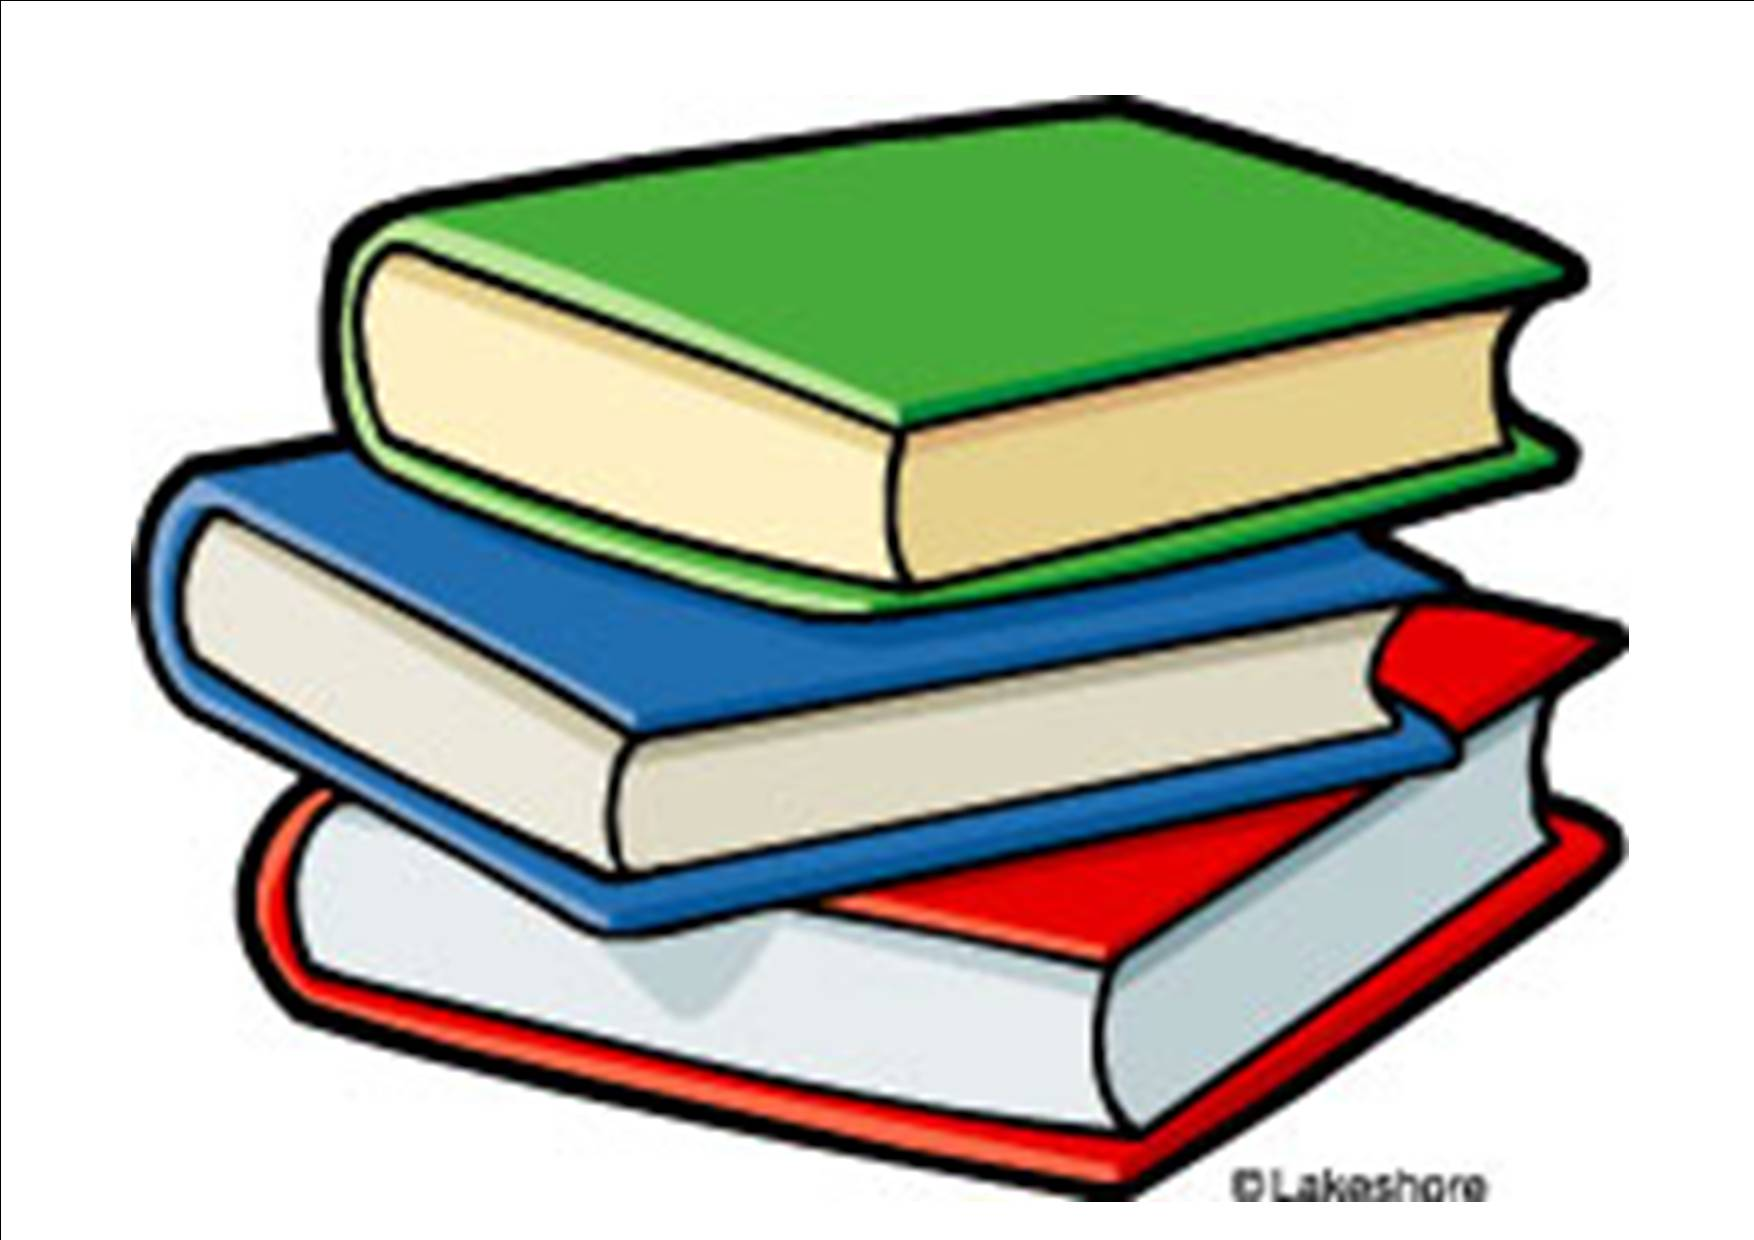 hight resolution of pencil and book clipart